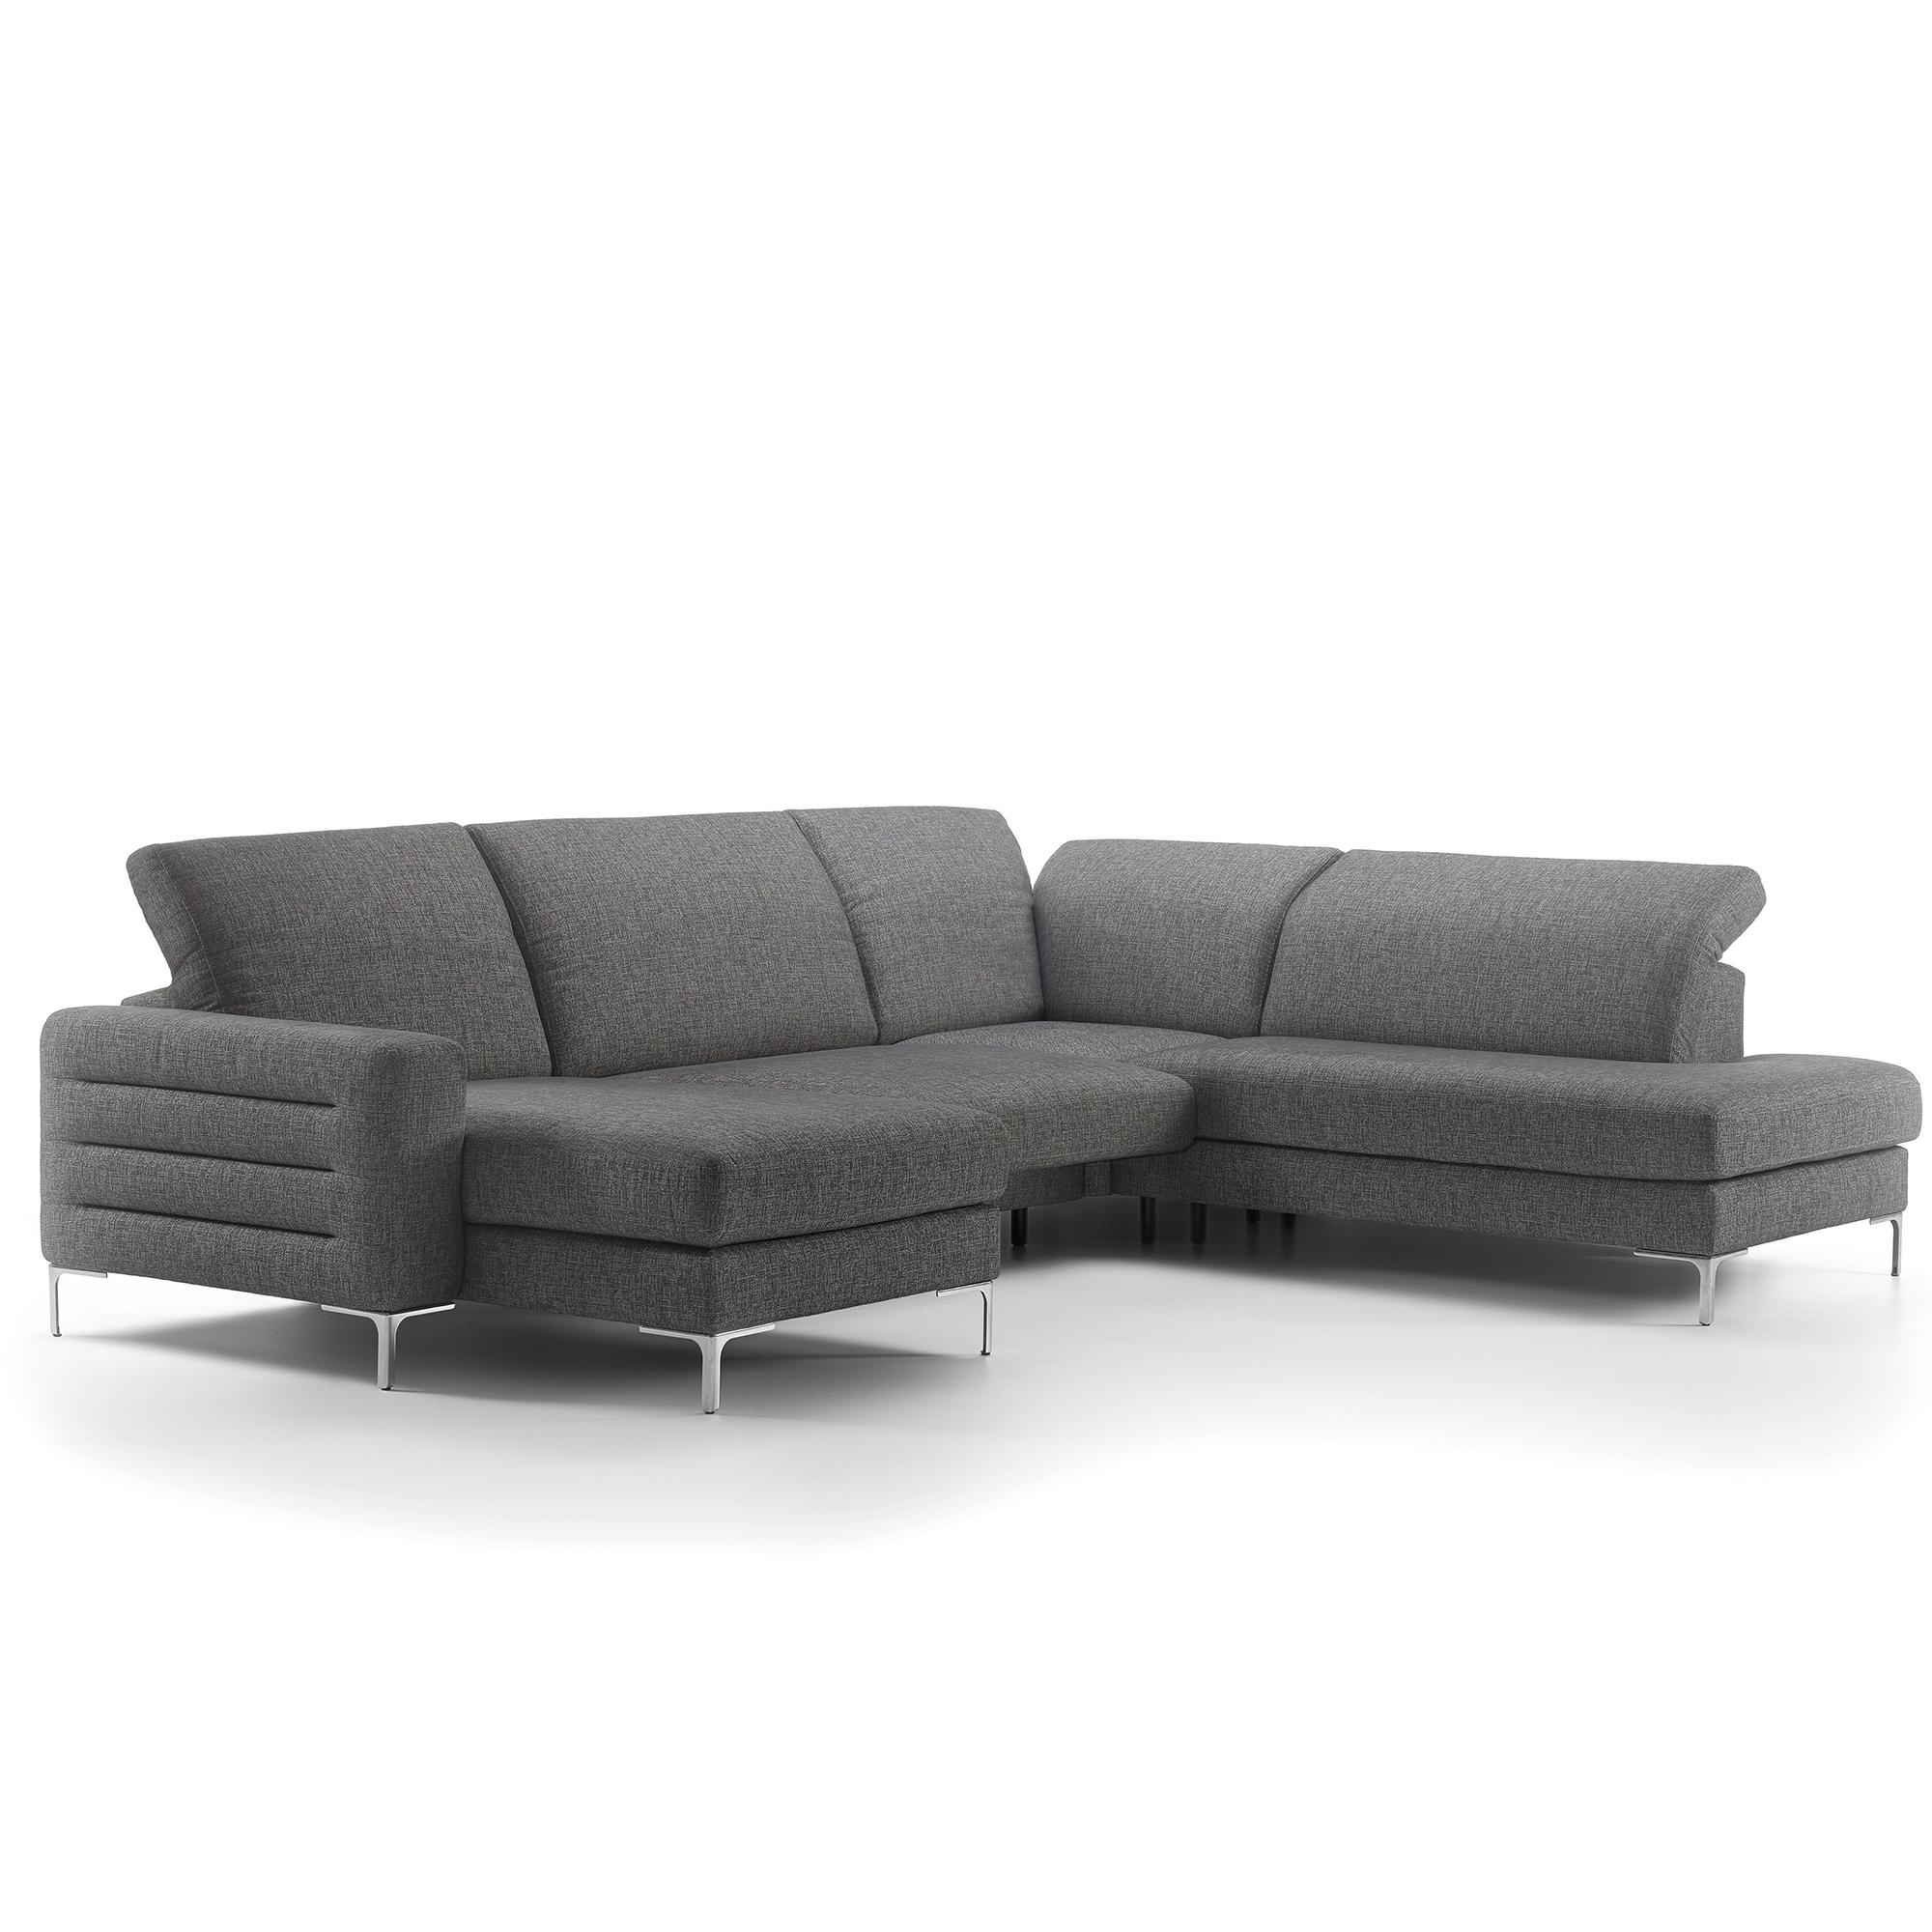 Rom Maori Corner Sofa – Leather Sofas – Cookes Furniture With Regard To Corner Sofa Leather (Image 16 of 20)